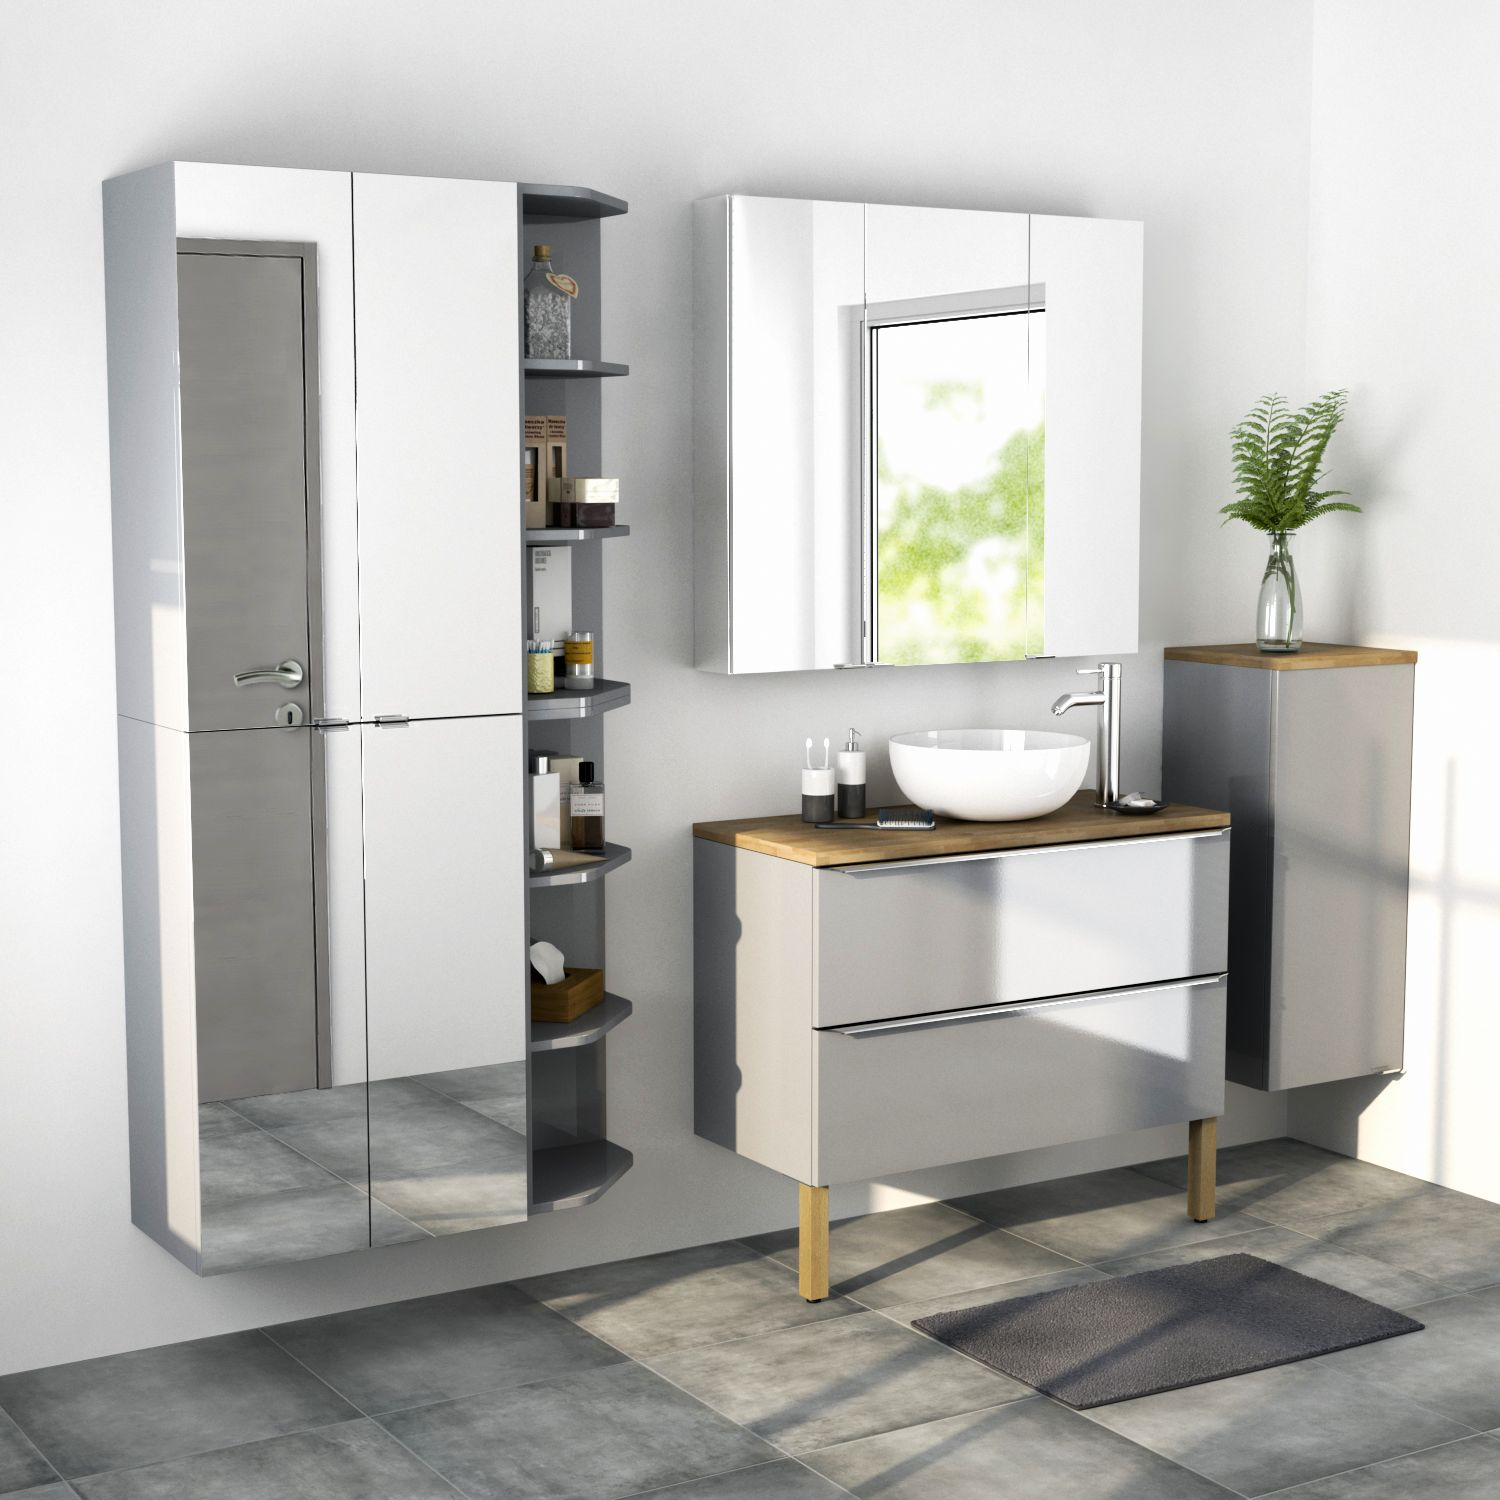 Imandra | Modular Bathroom Furniture